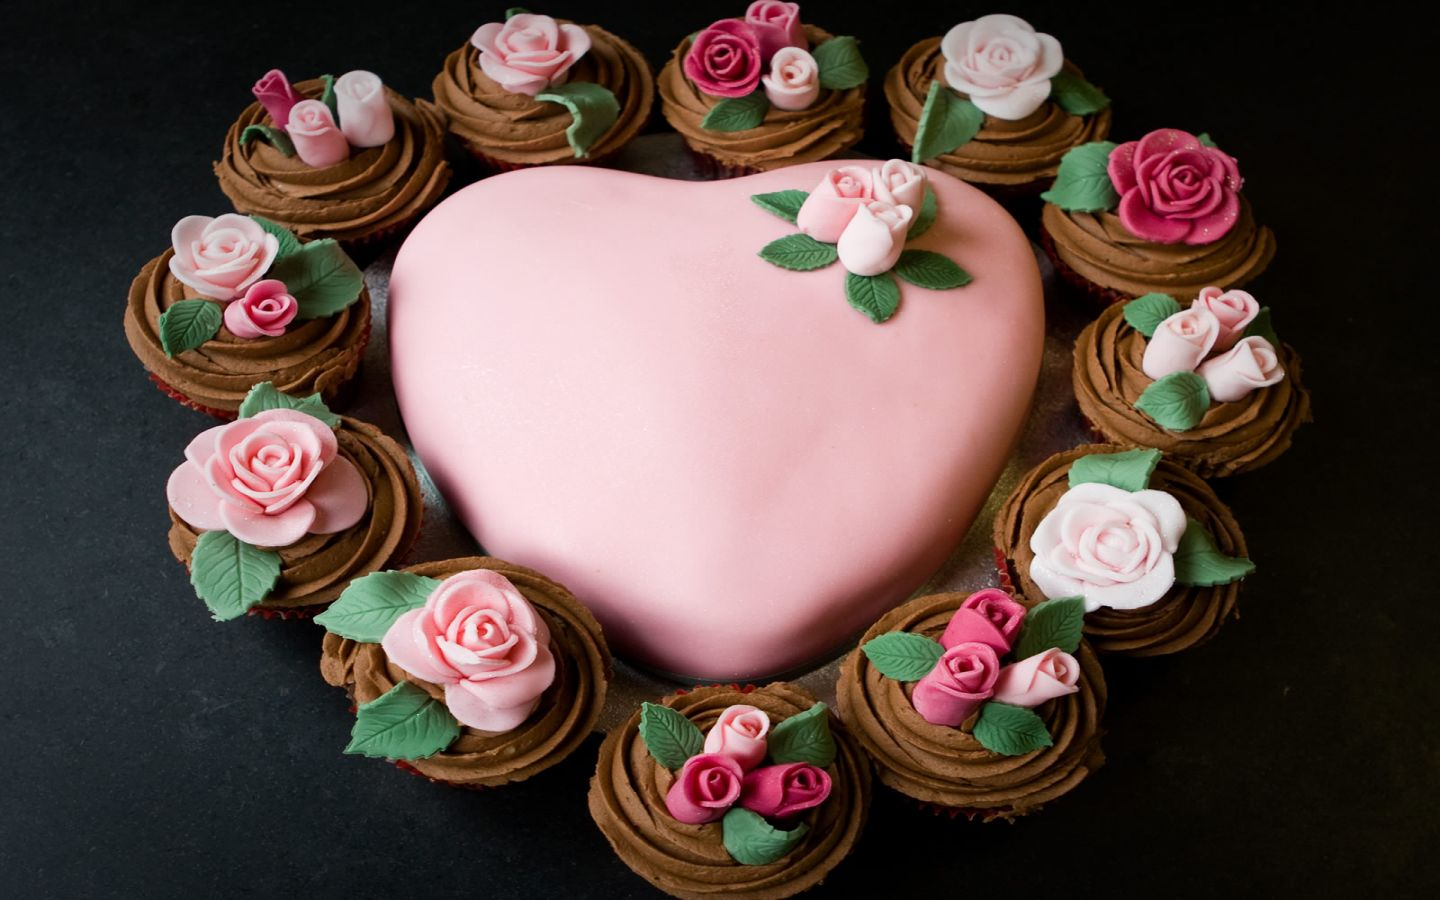 Images Of Cake Of Love : Love Heart Cake Wallpapers - 1440x900 - 151520